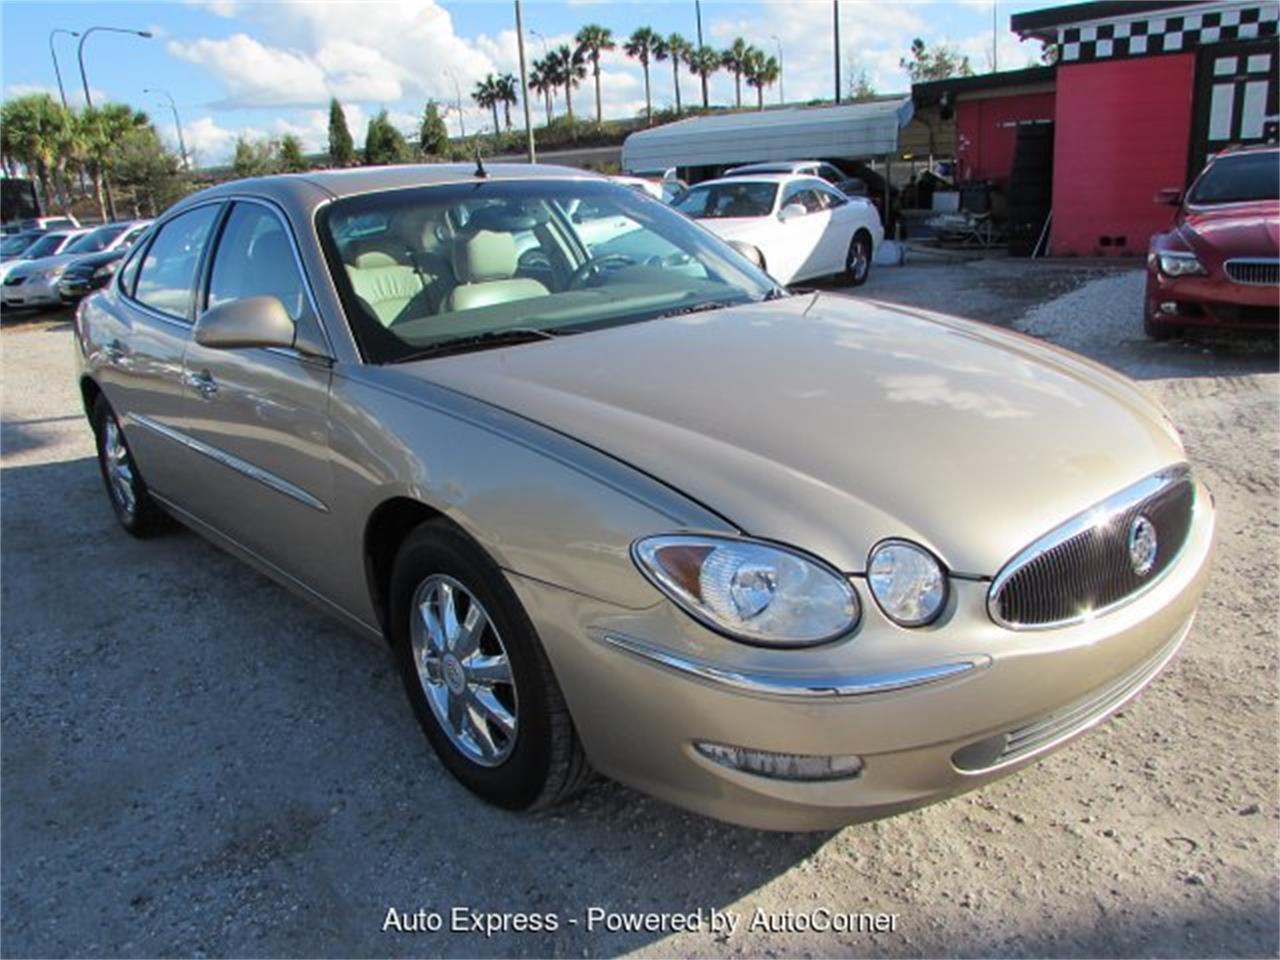 2005 Buick Lacrosse for sale in Orlando, FL